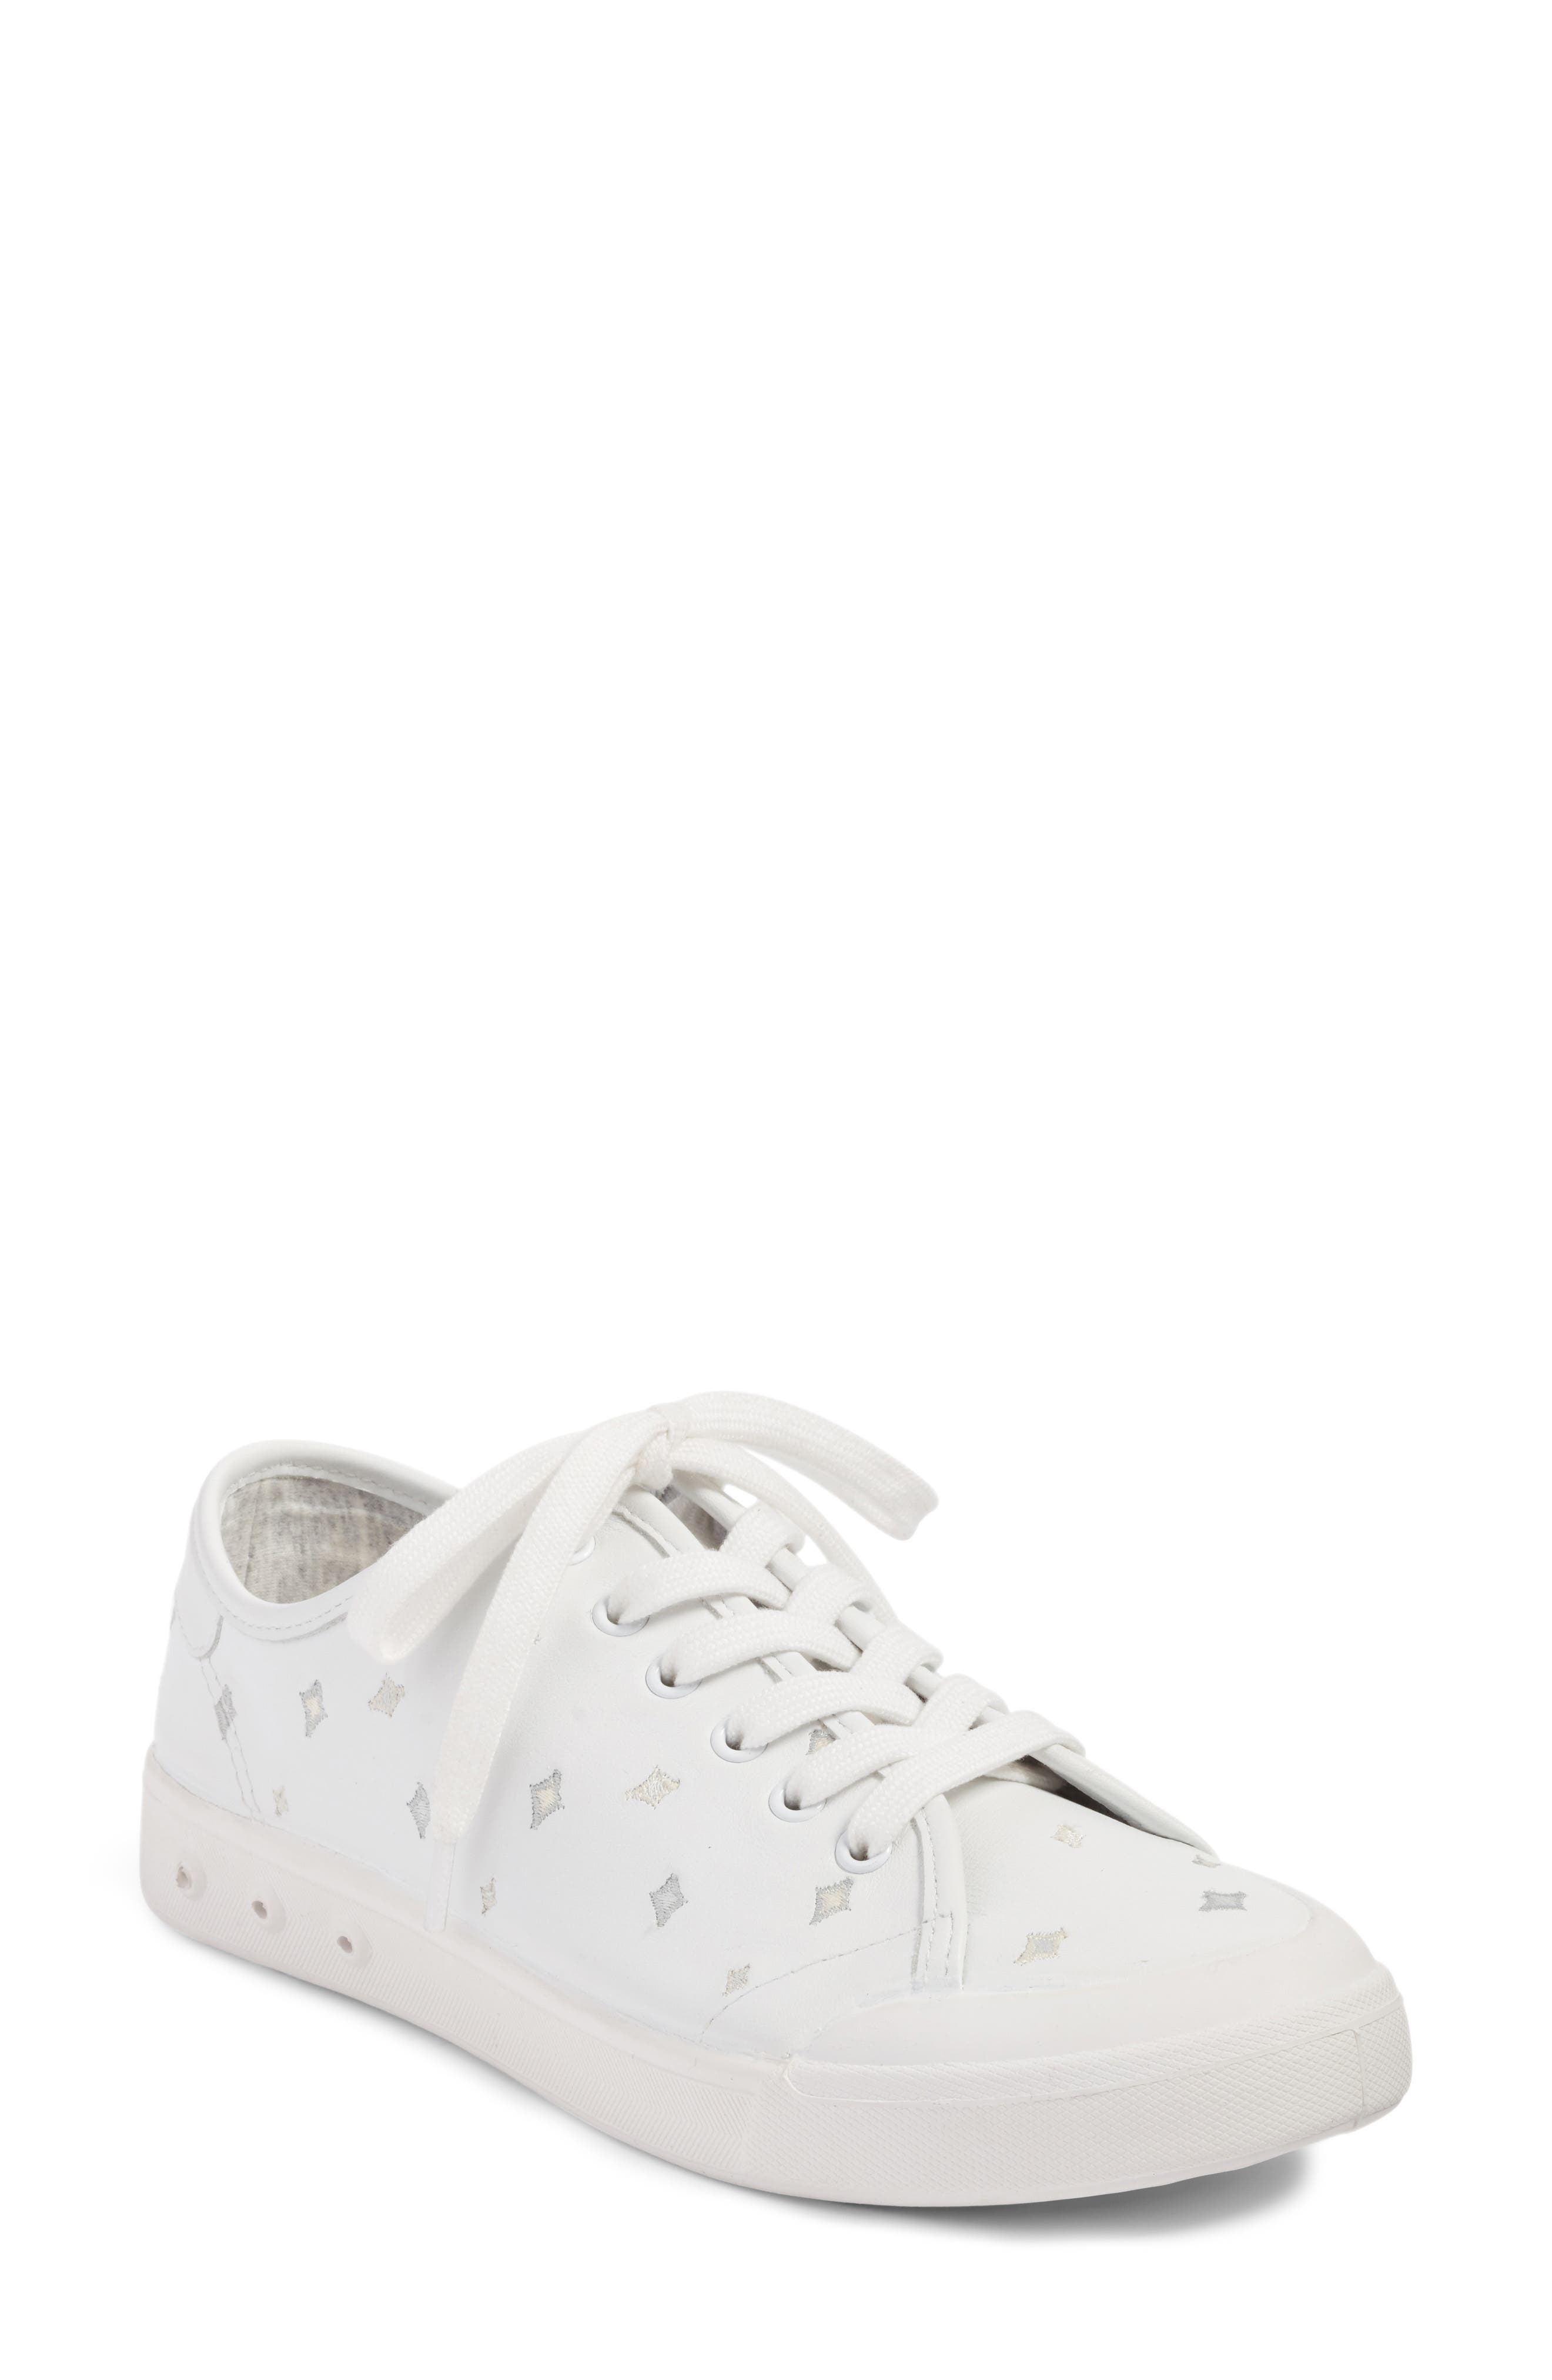 Main Image - rag & bone Embroidered Standard Issue Sneaker (Women)